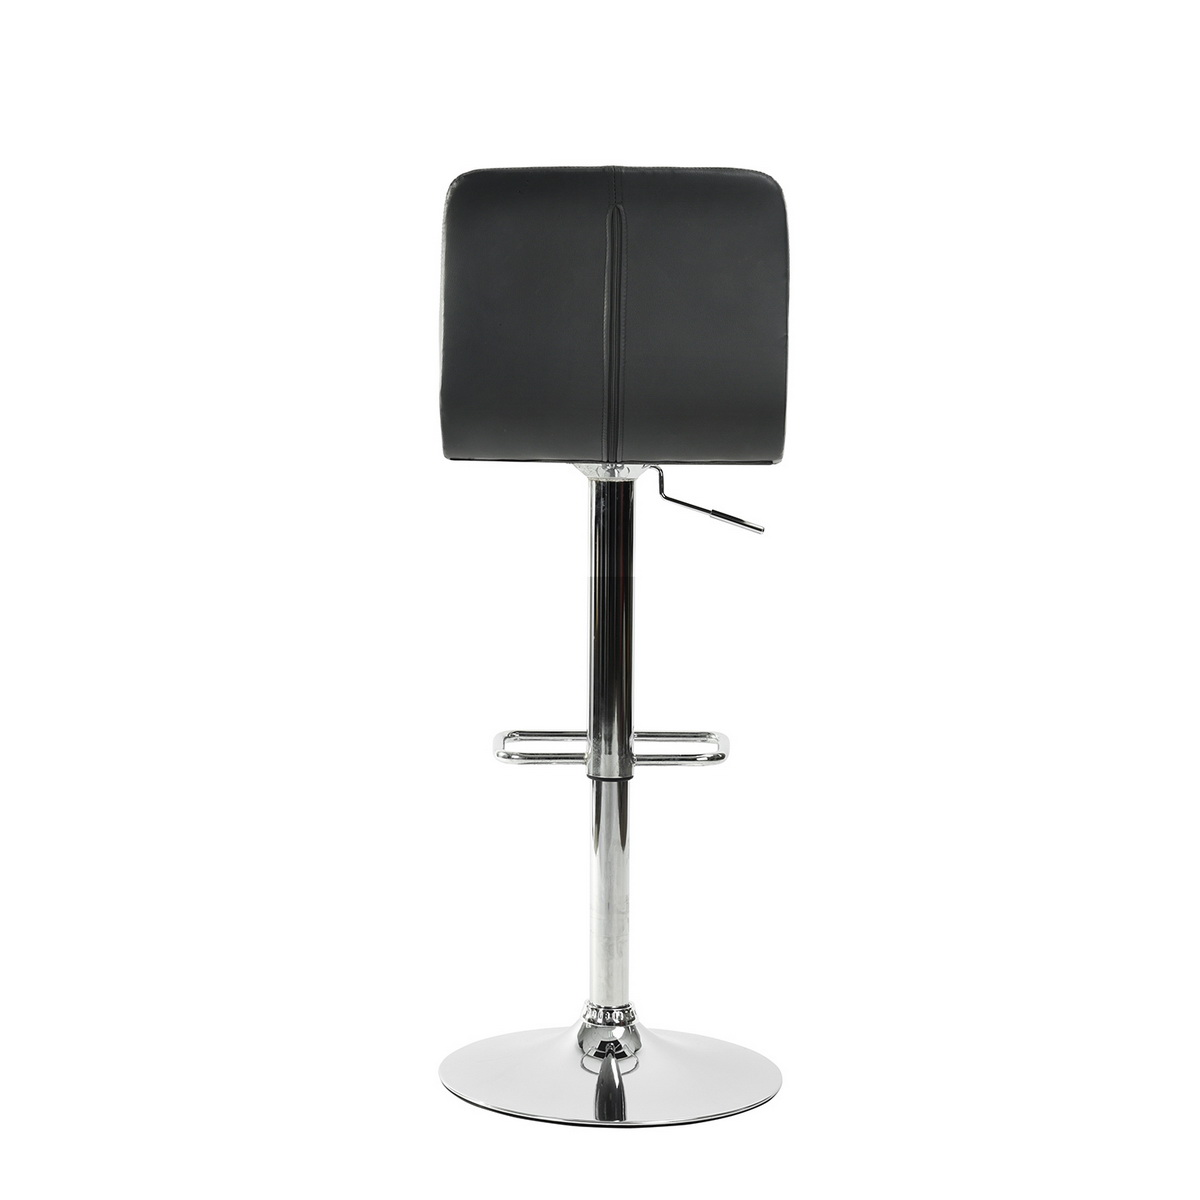 Tabouret de bar contemporain simi noir m tal chrom repose pied hauteur r glable ebay for Tabouret bar contemporain